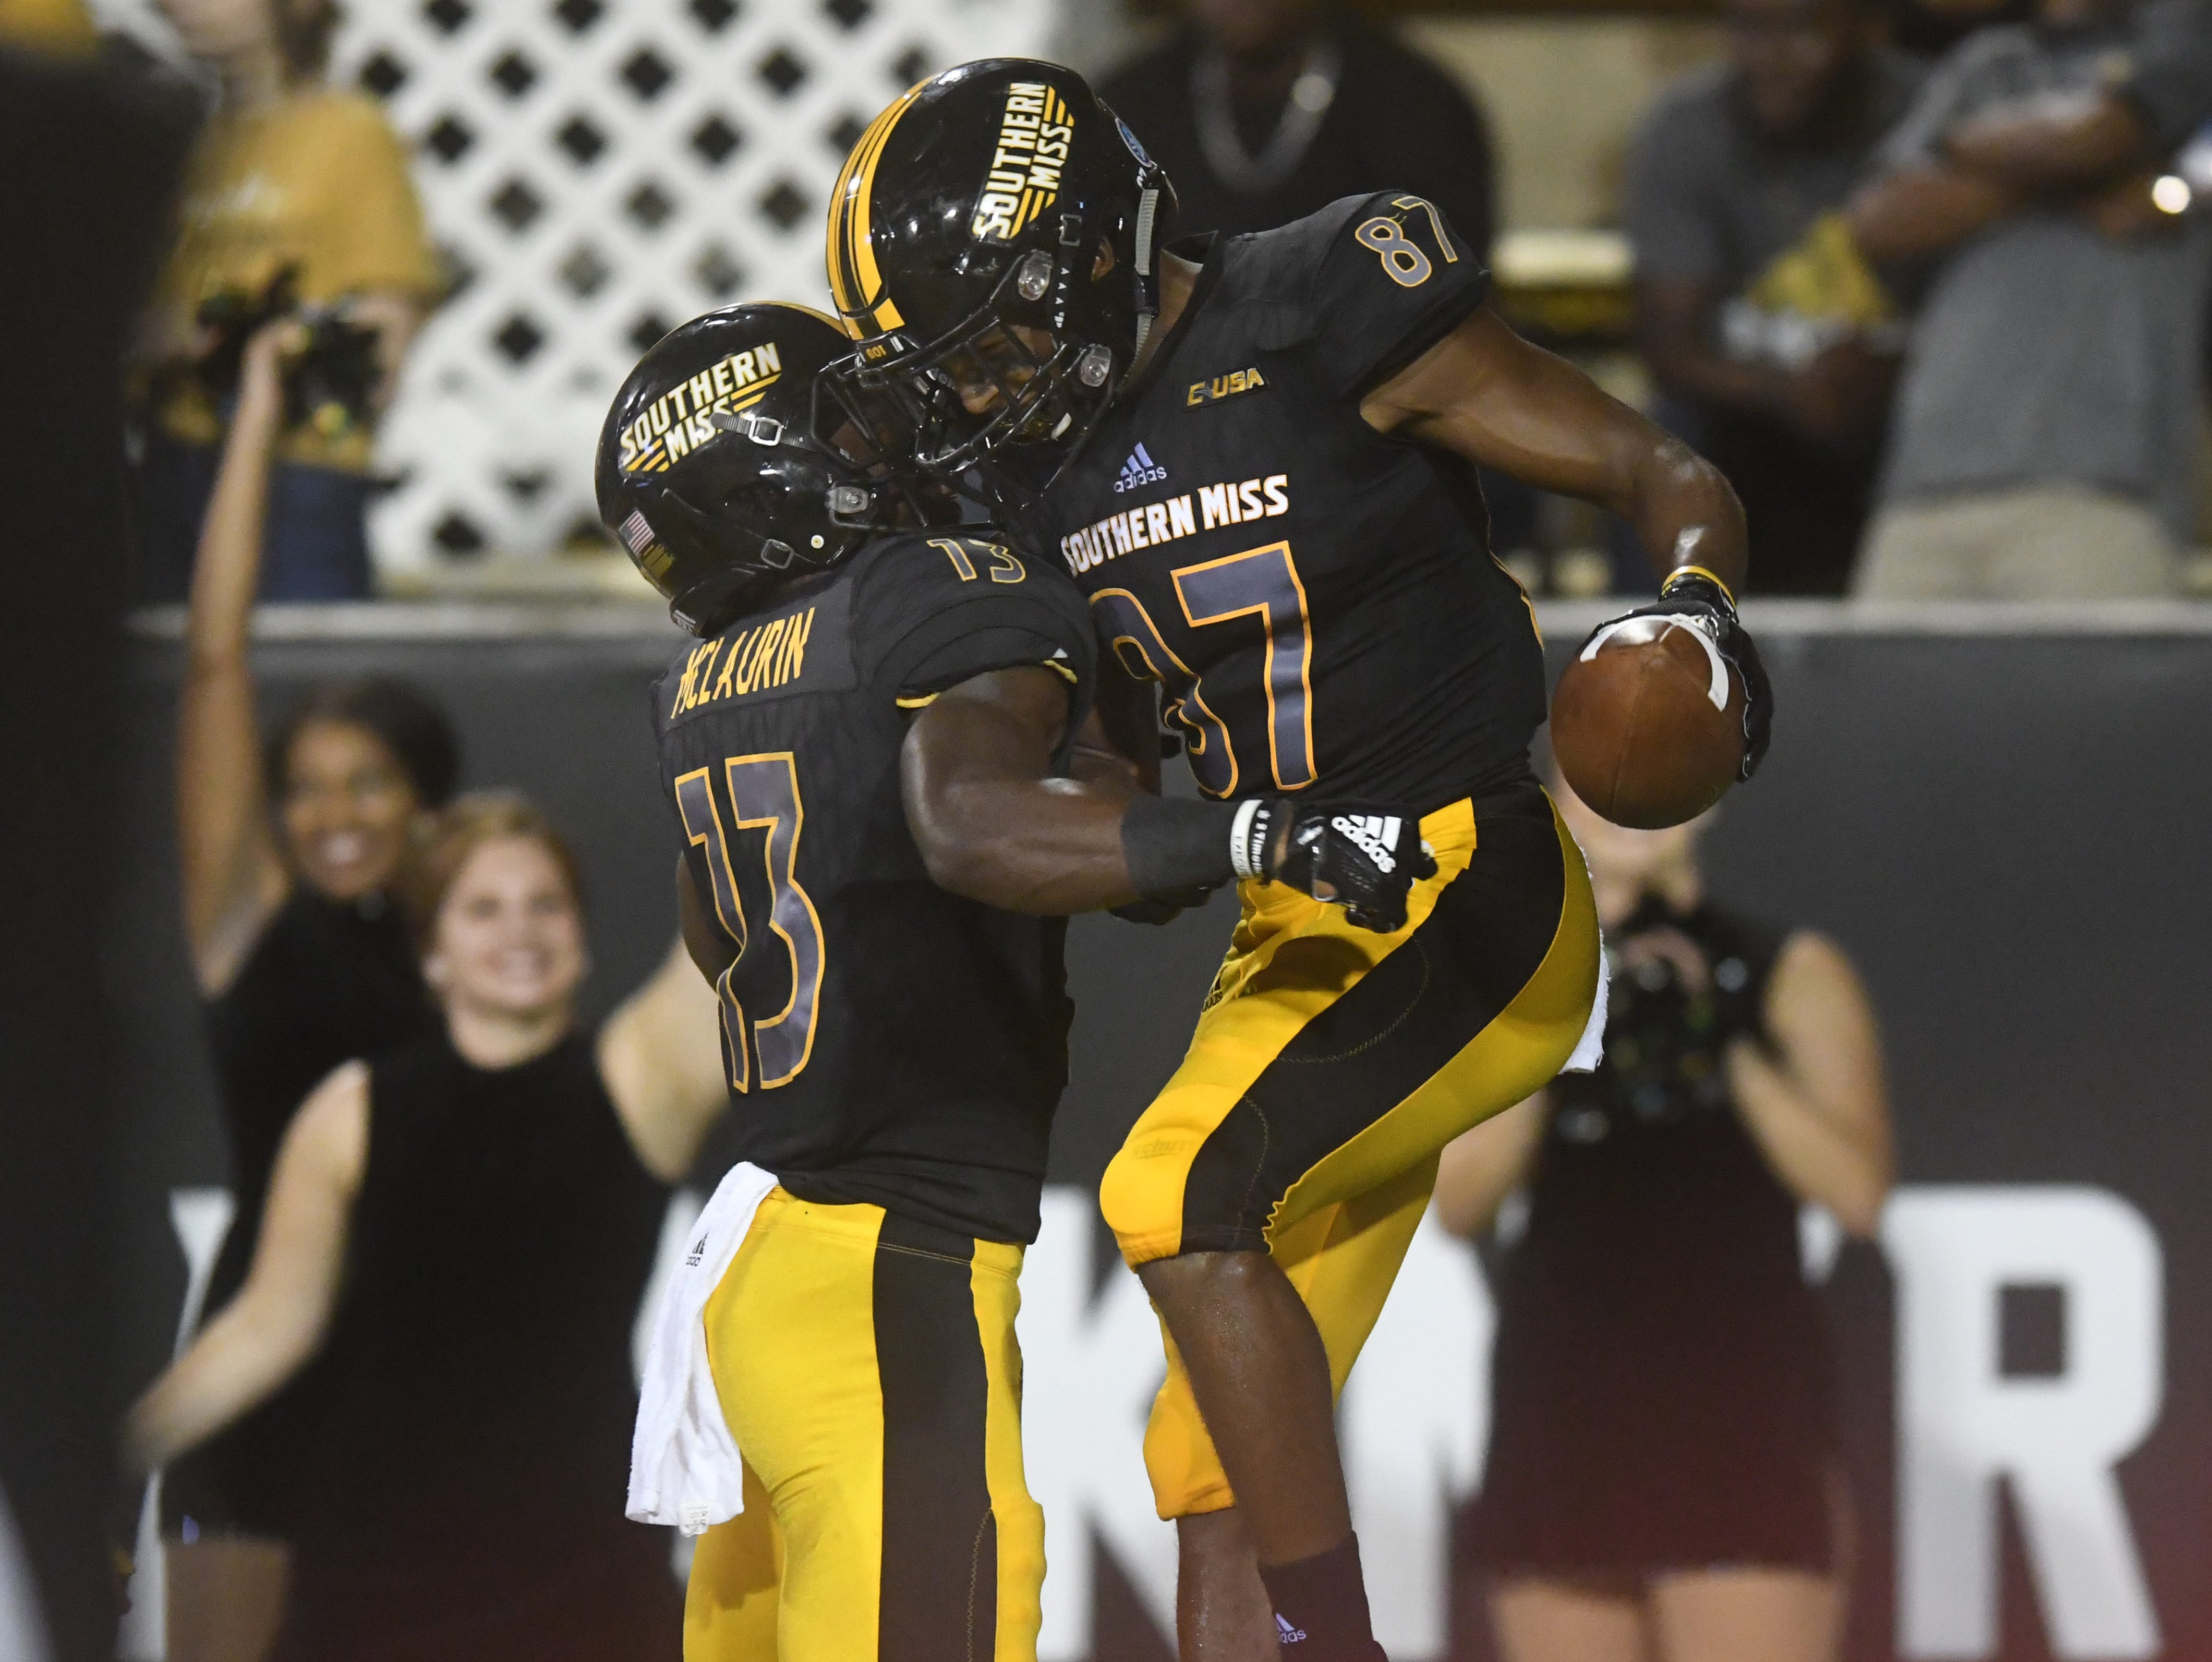 Southern Miss wide receiver Tim Jones celebrates after a touchdown in a game against Rice at M.M. Roberts Stadium on Saturday, September 22, 2018.